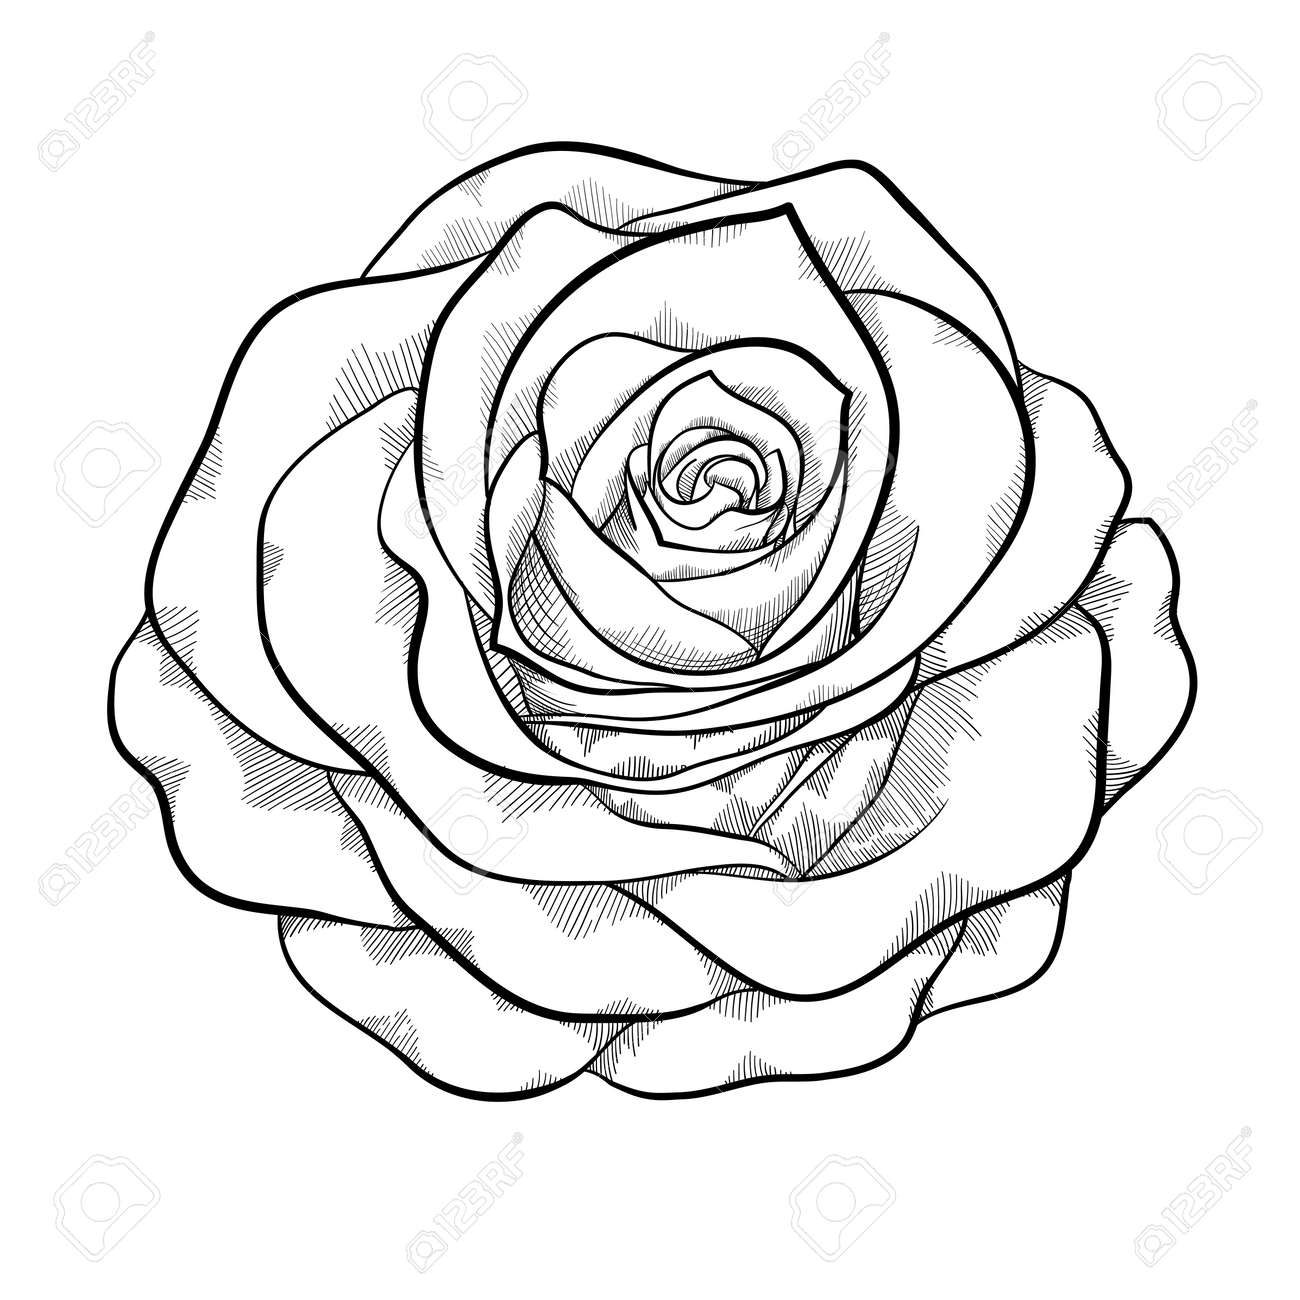 Beautiful monochrome black and white rose isolated on white background hand drawn contour lines